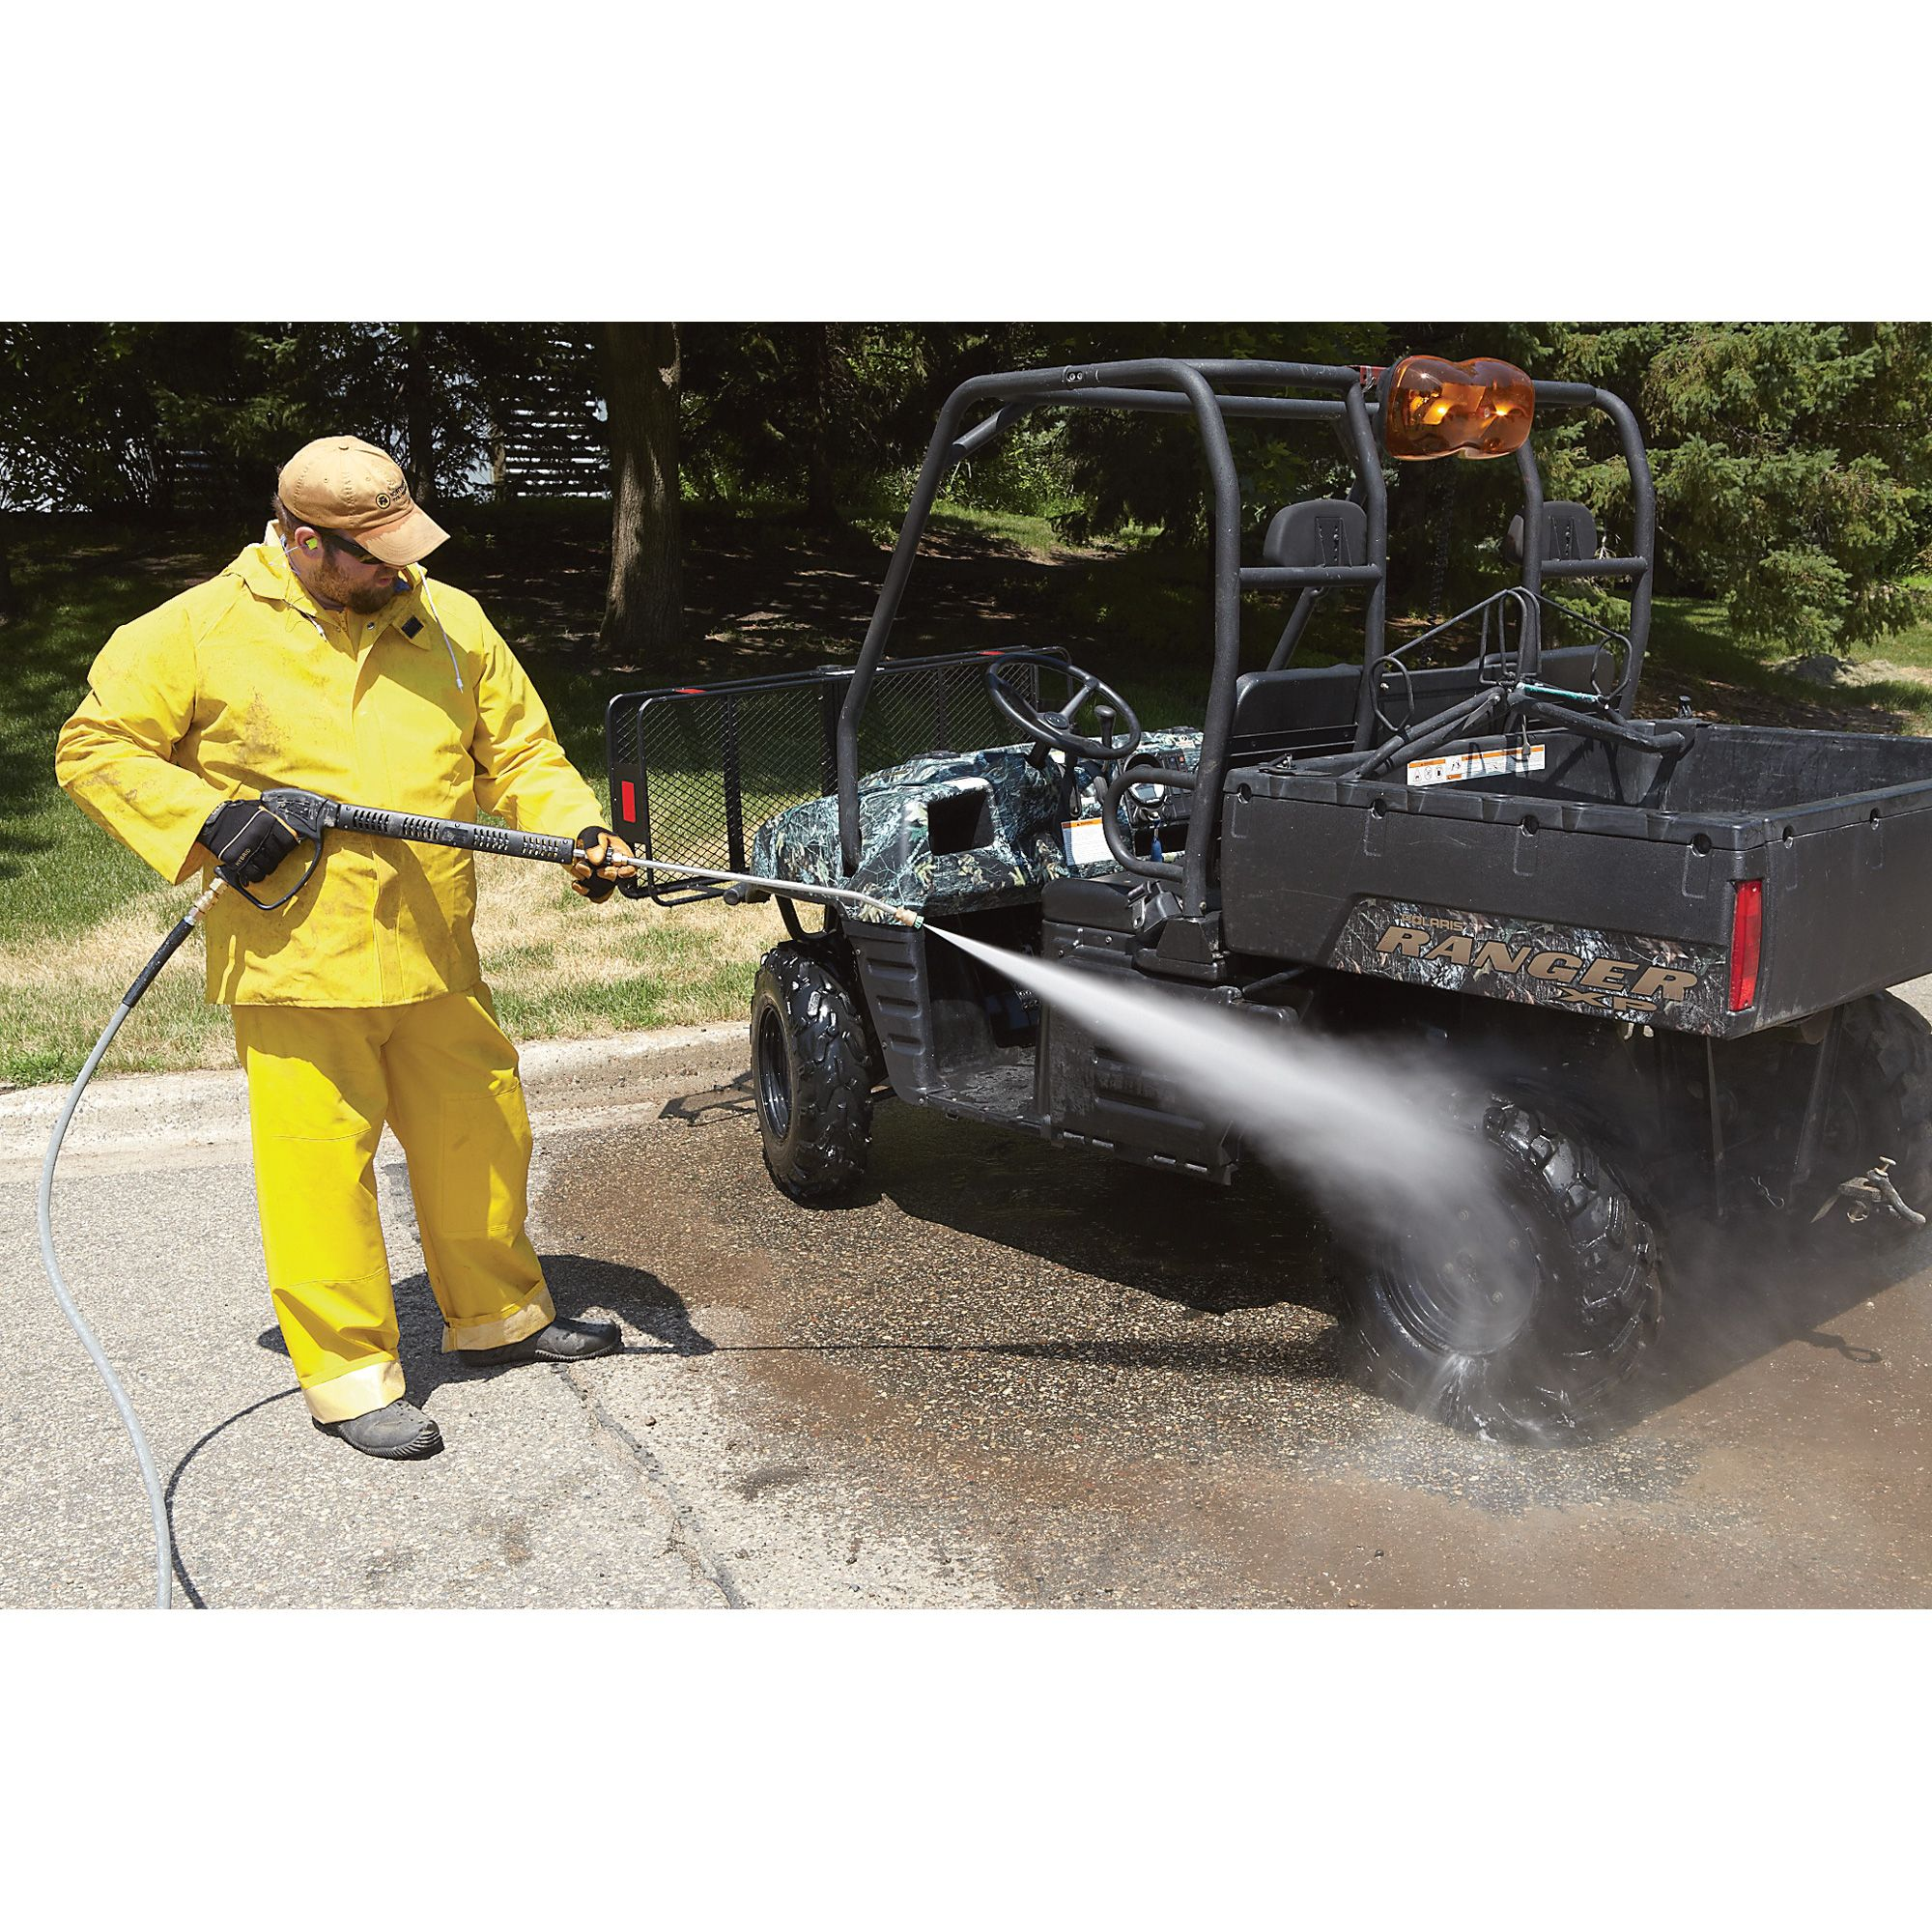 Northstar Gas Cold Water Pressure Washer 4 000 Psi 3 5